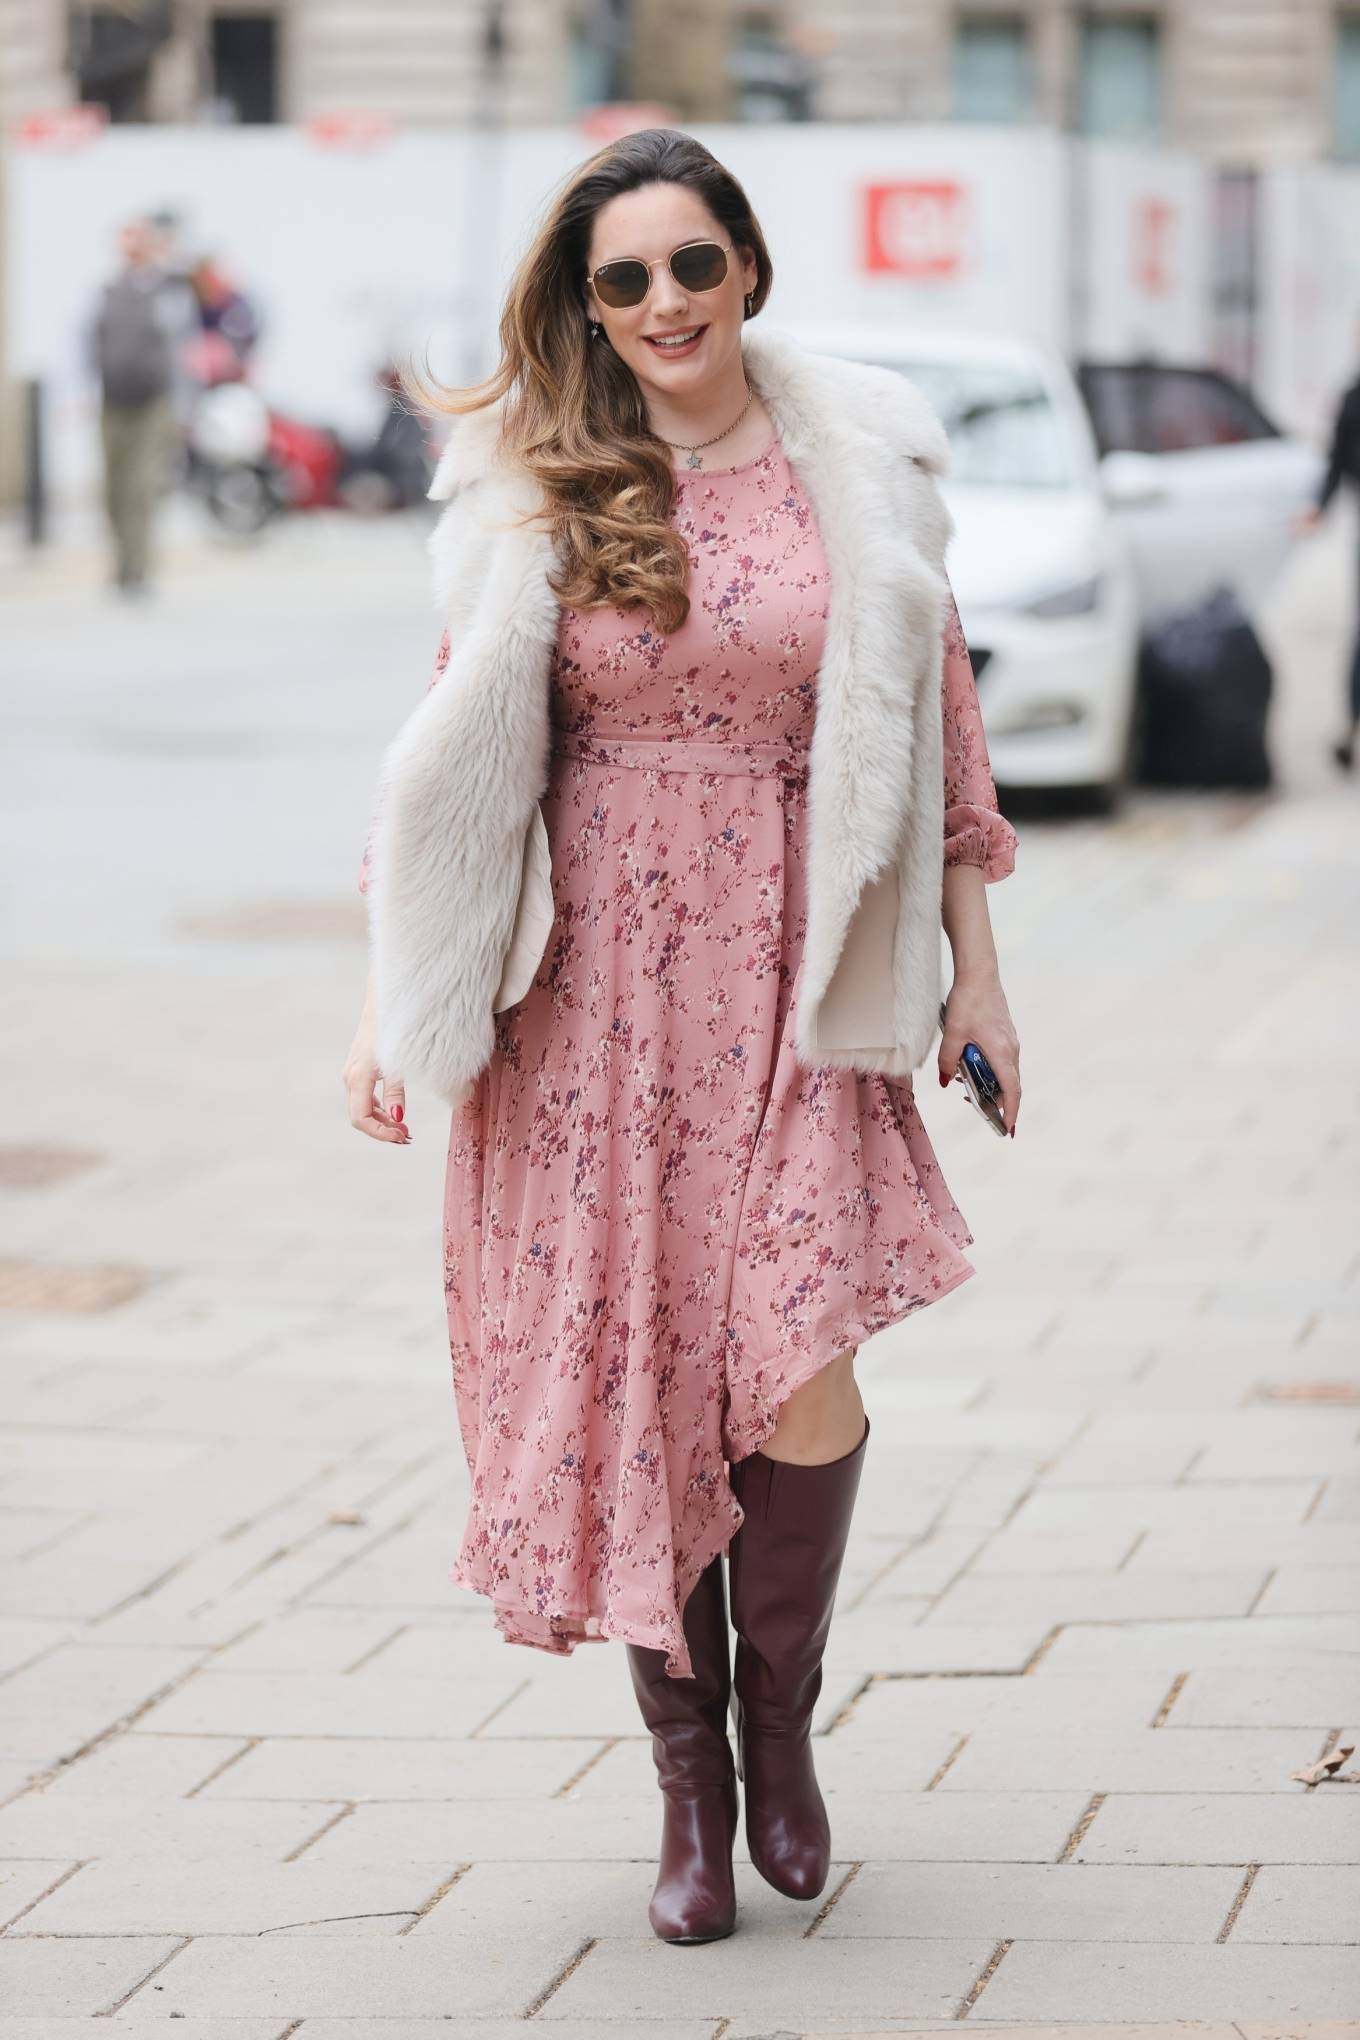 Kelly Brook - Looks stylish in a pink dress and leather boots at Heart radio in London